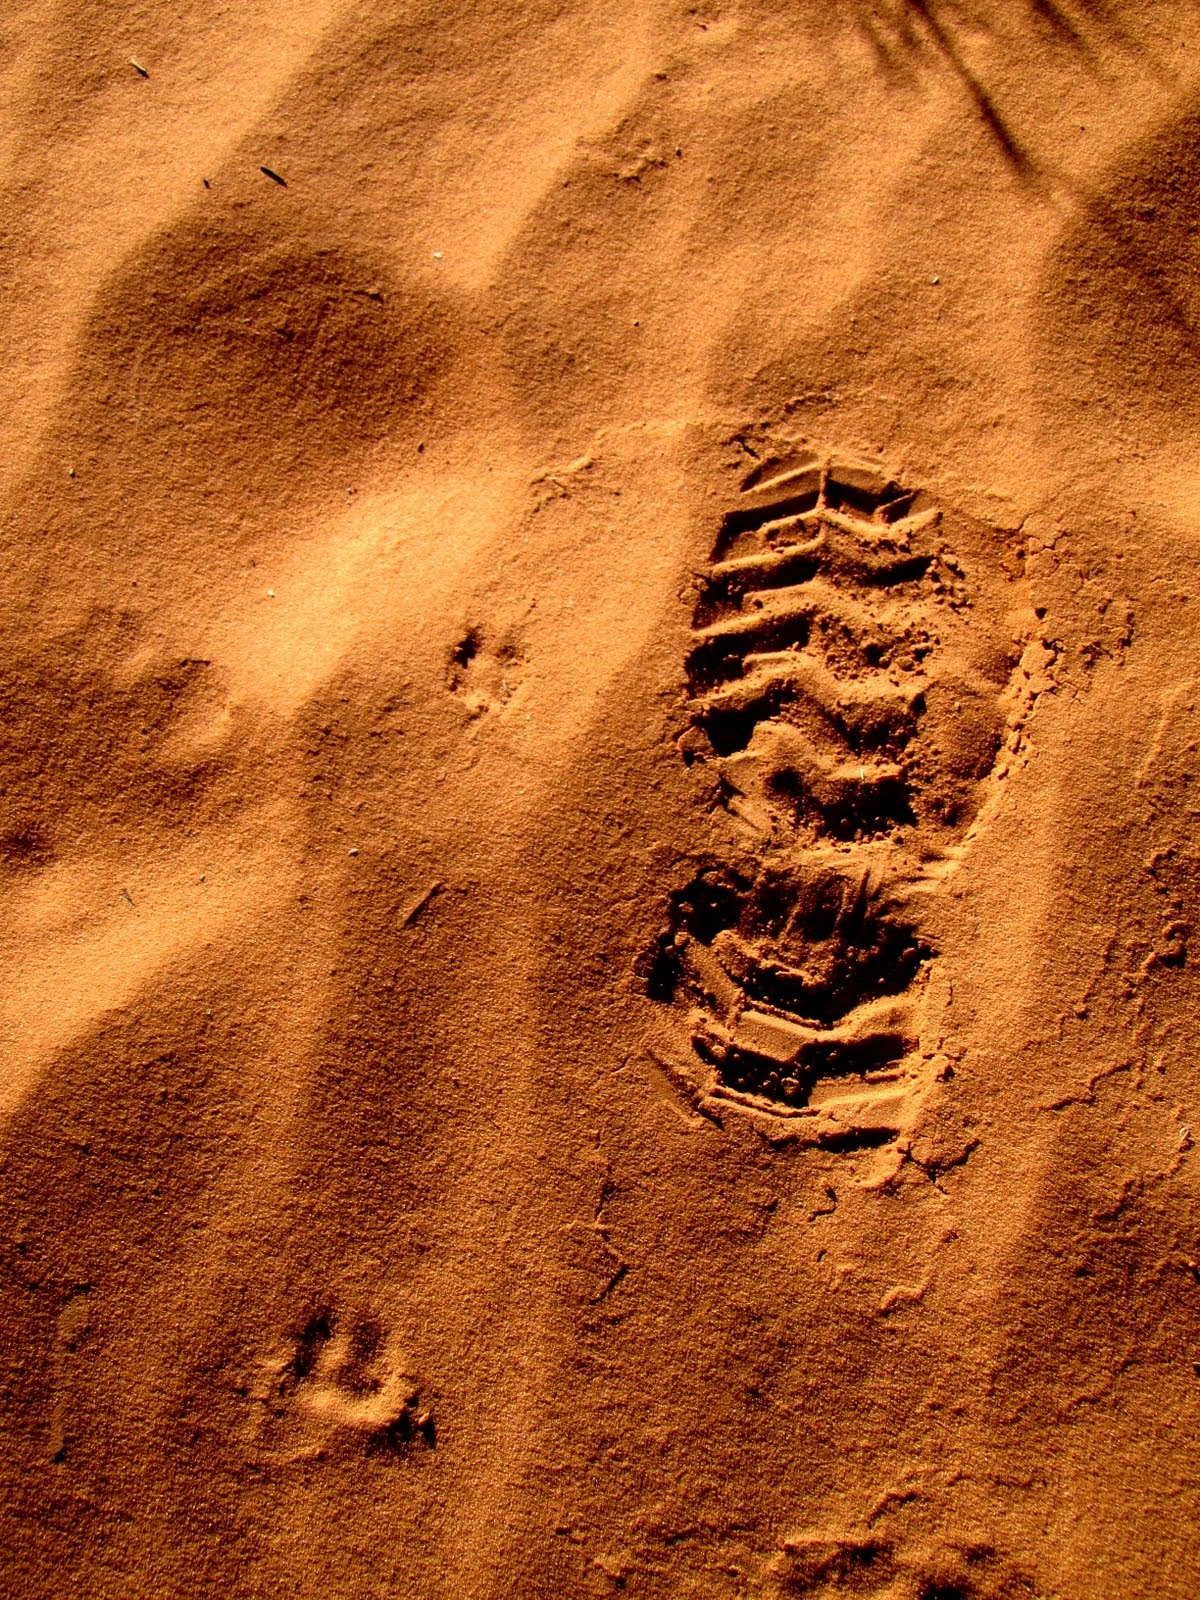 That's one small step for mankind, one giant leap for a man